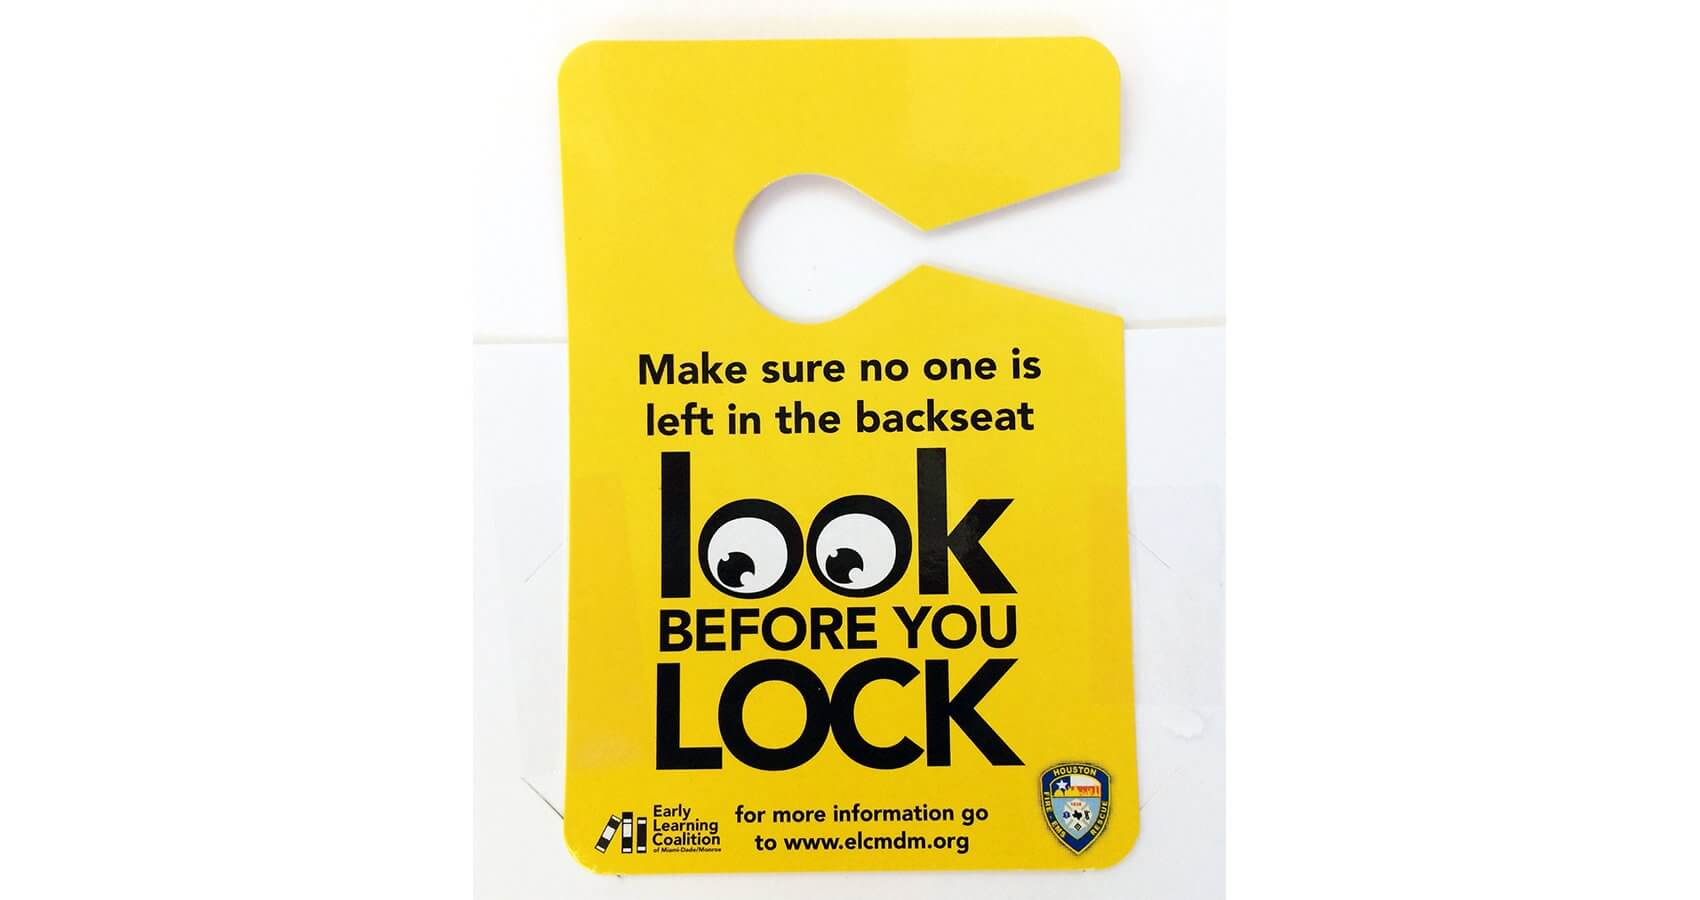 Tags from the Houston Fire Department remind drivers to check the backseat before locking their vehicle.